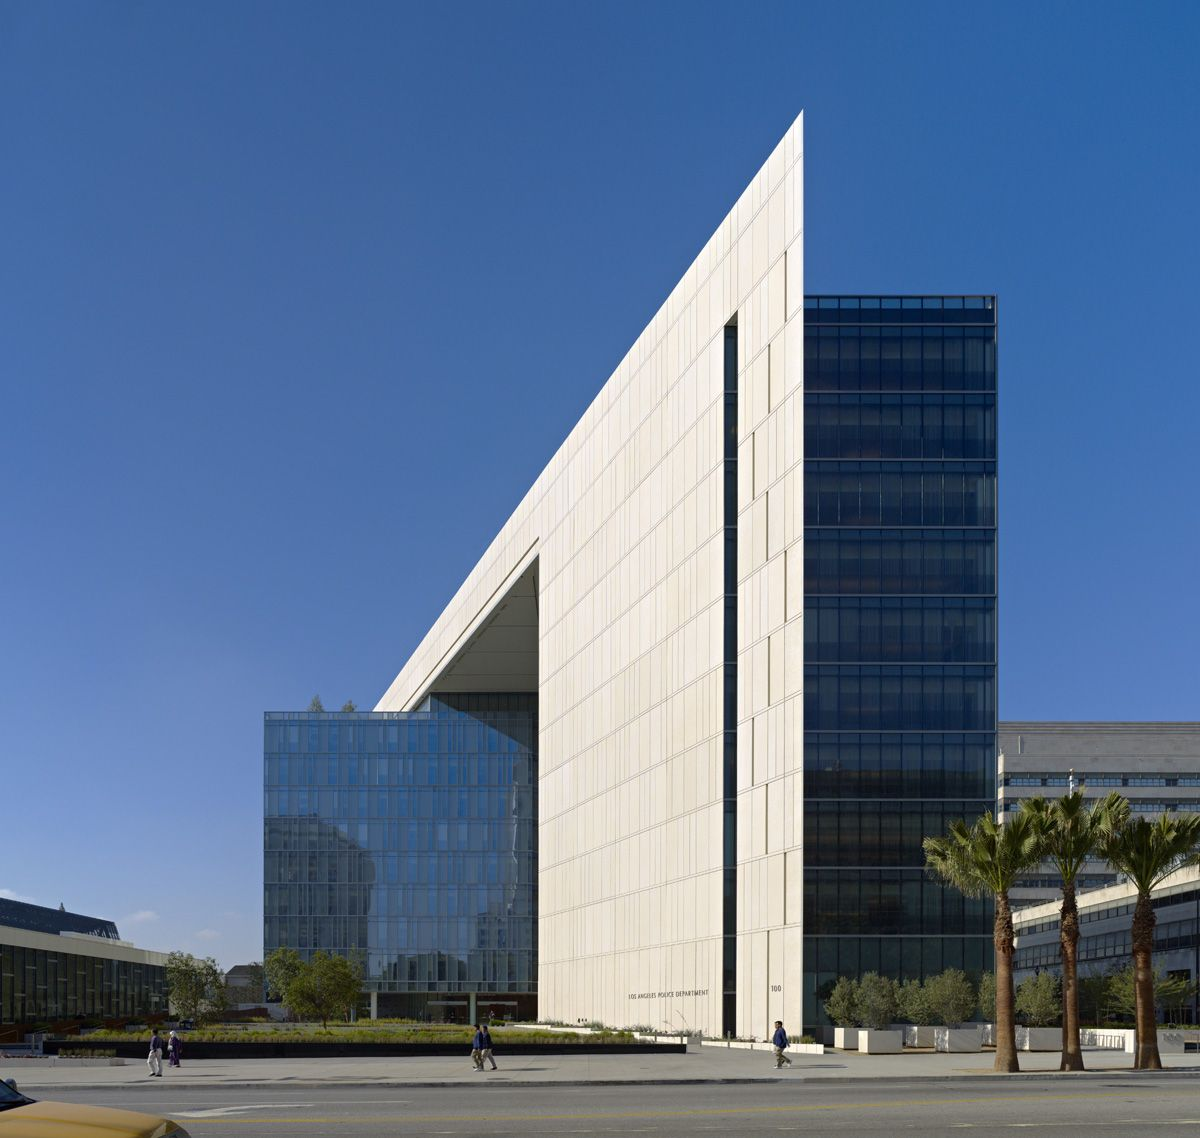 Los Angeles Police Headquarters Architecture Building Architecture Project